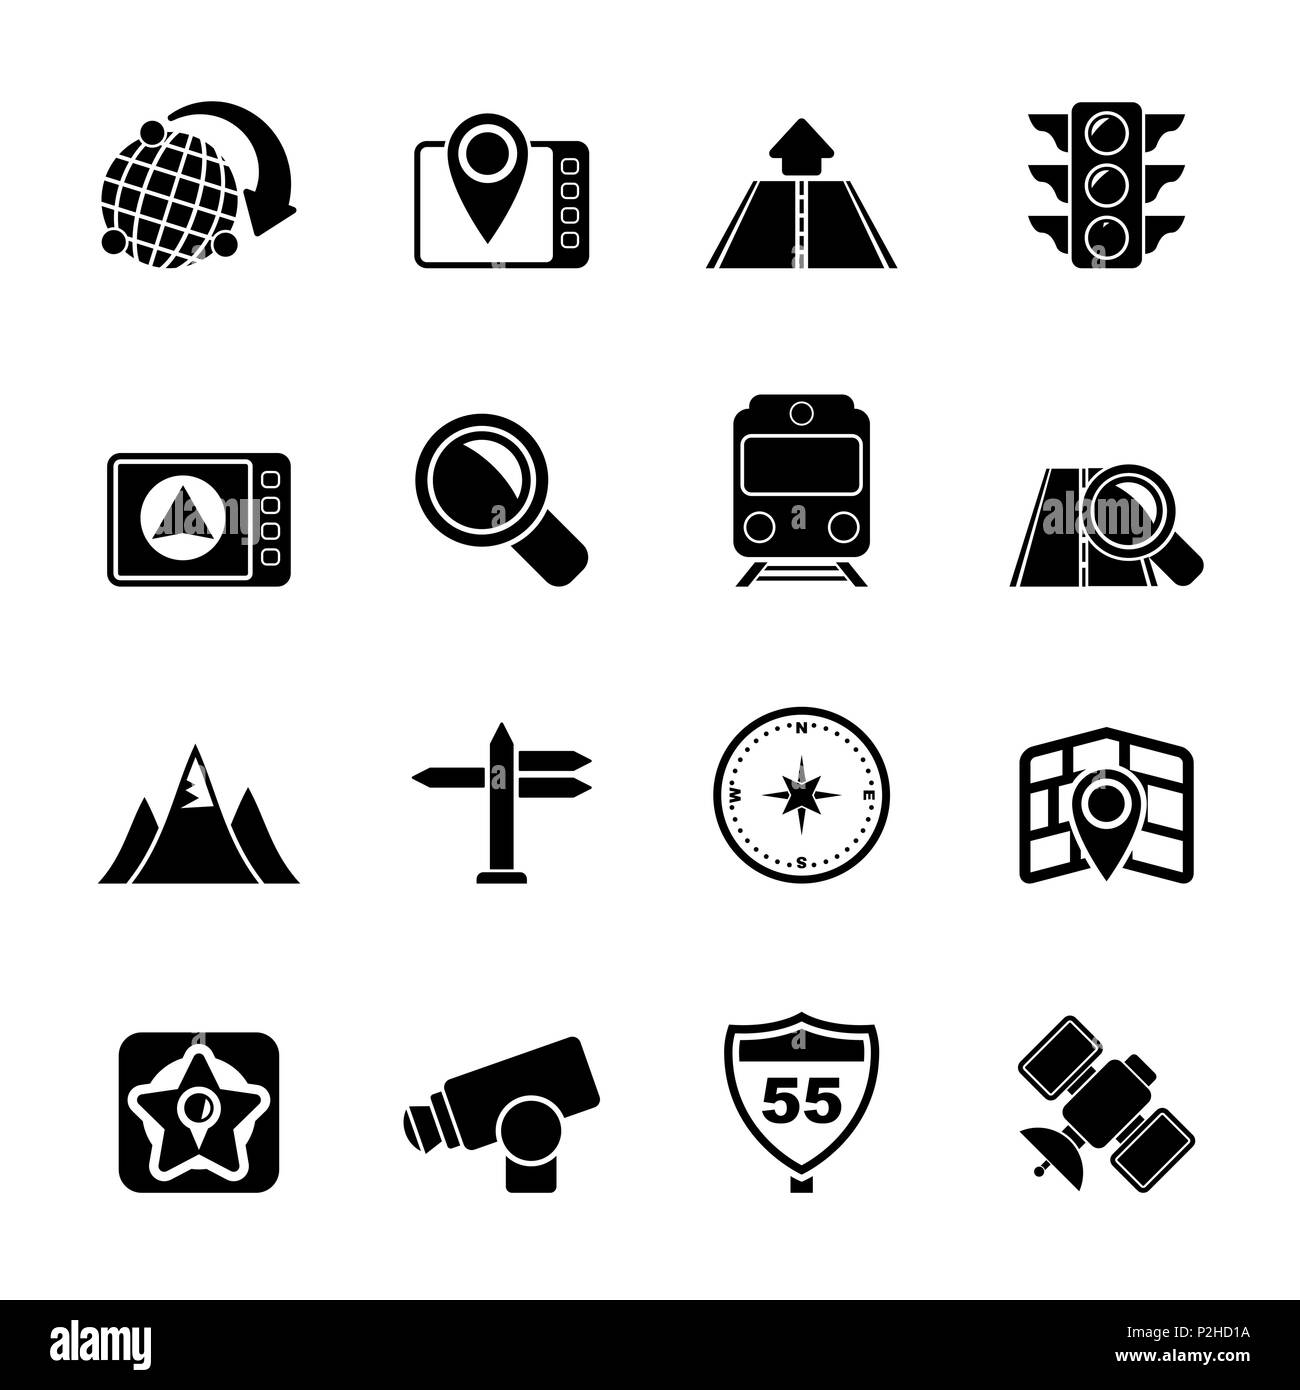 Silhouette Map, navigation and Location Icons -vector icon set - Stock Vector